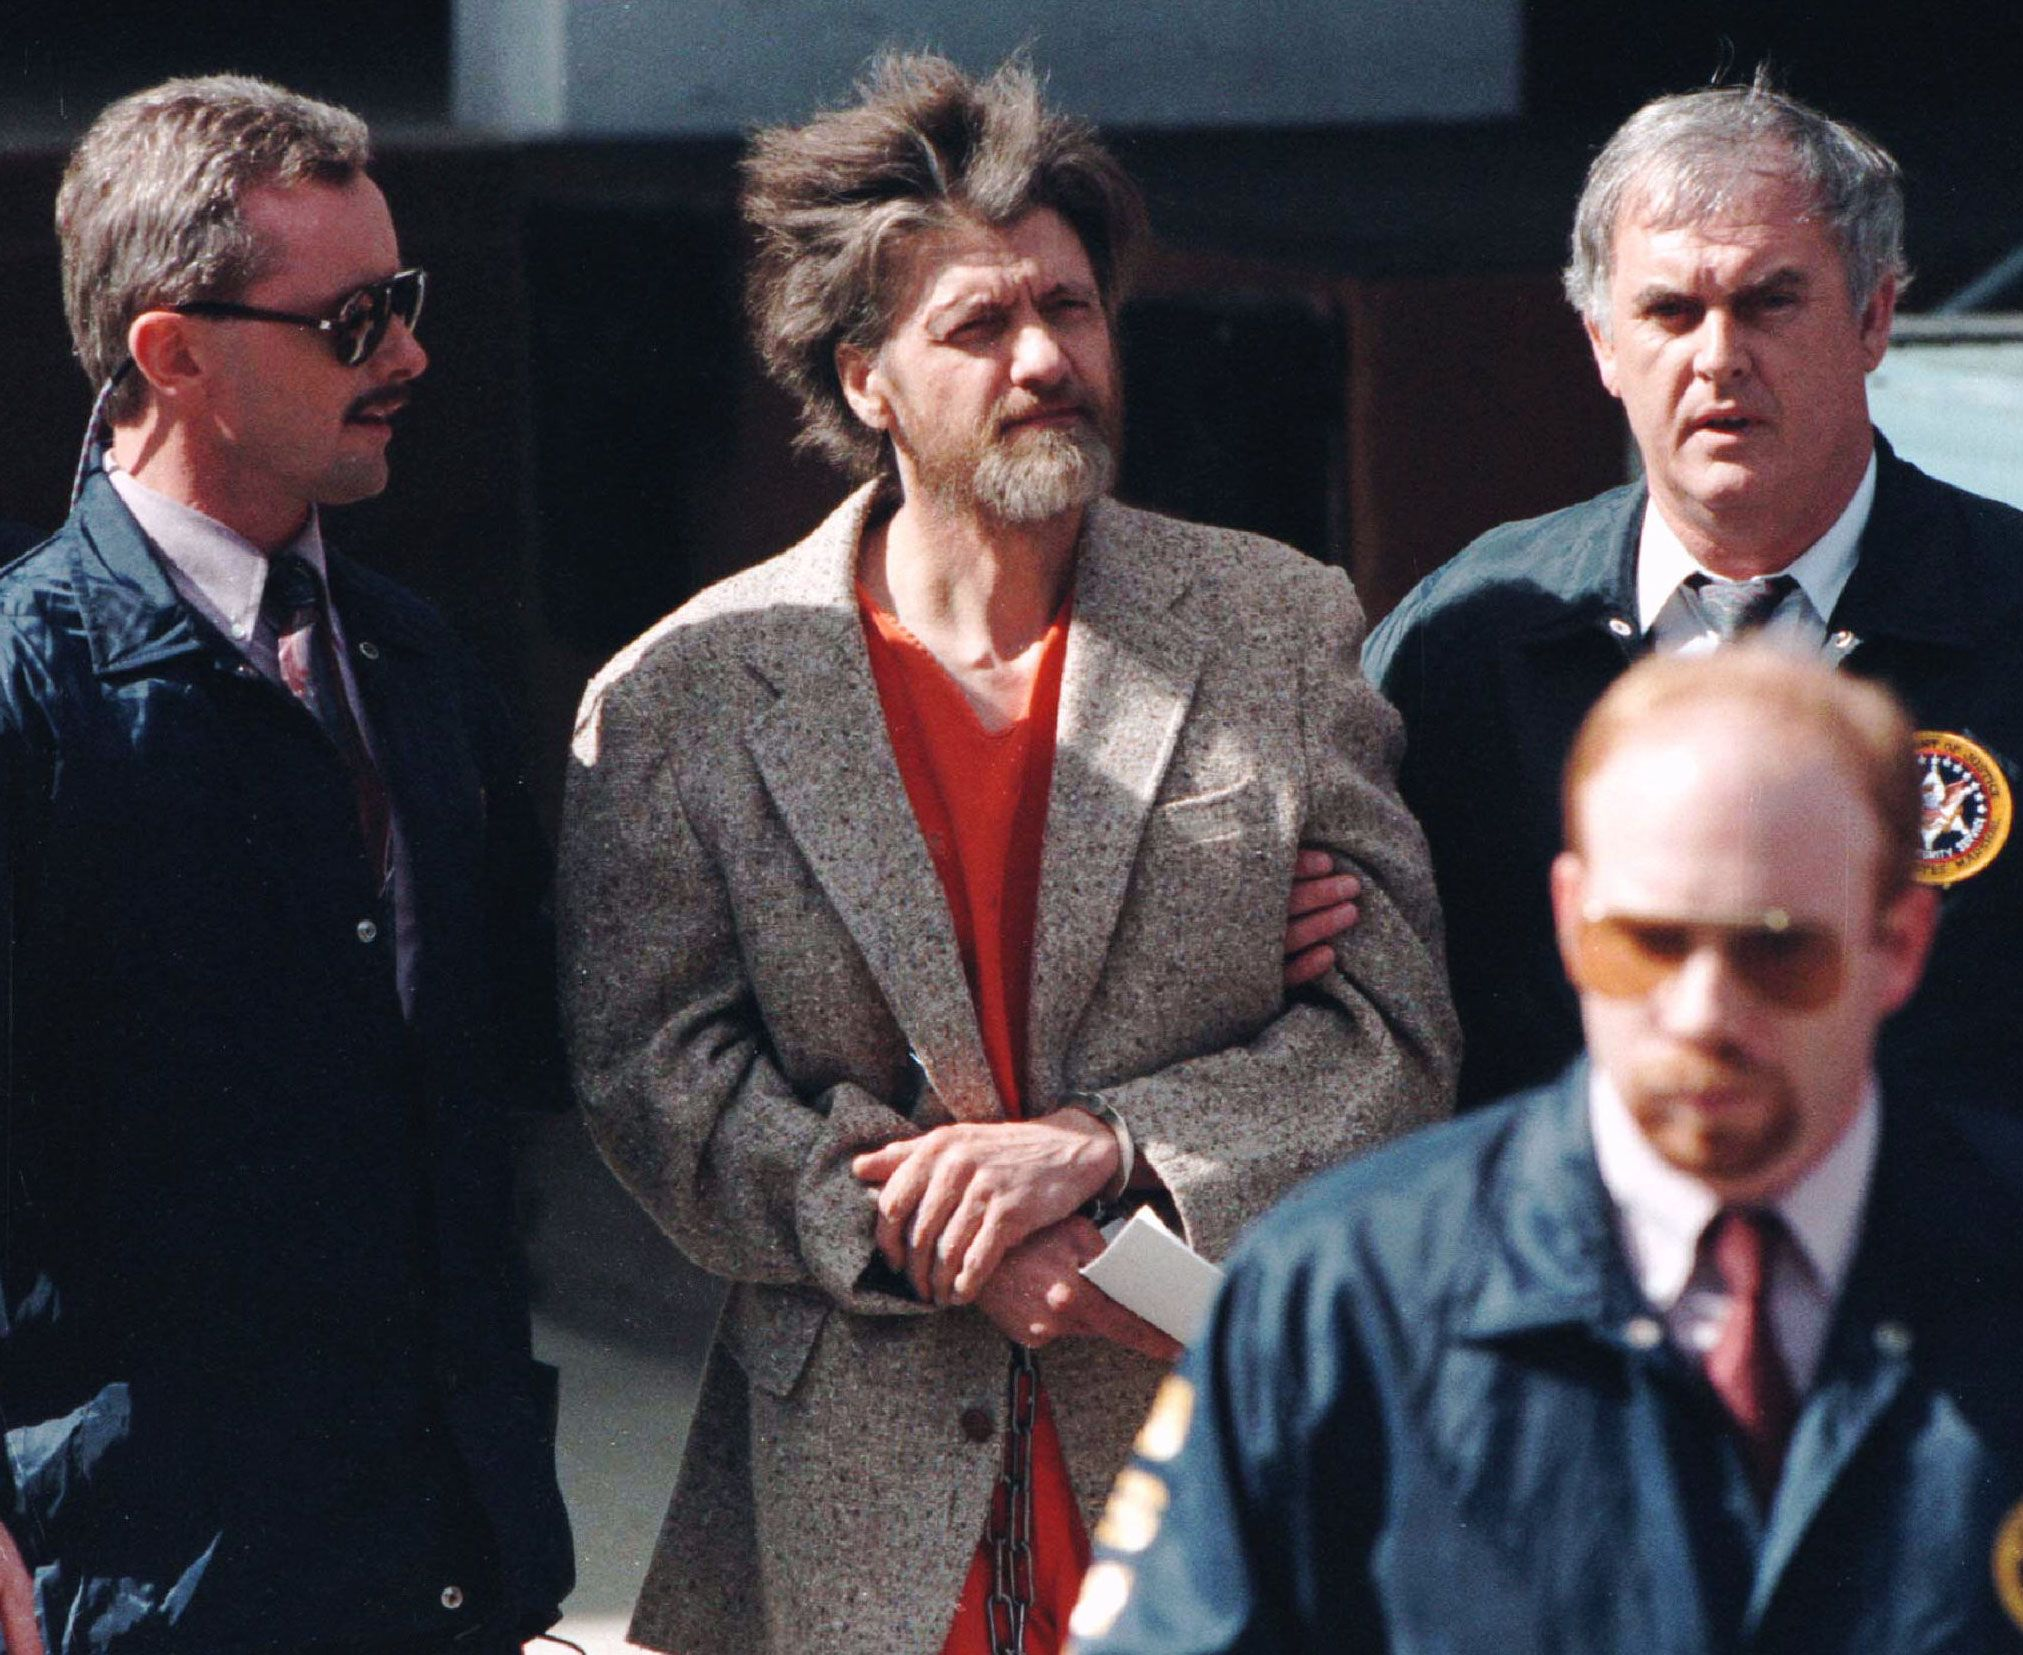 theodore kaczynski Theodore kaczynski, known as the unabomber, has been sentenced to four terms of life in prison he told the court in california the government's case against him was clearly political.